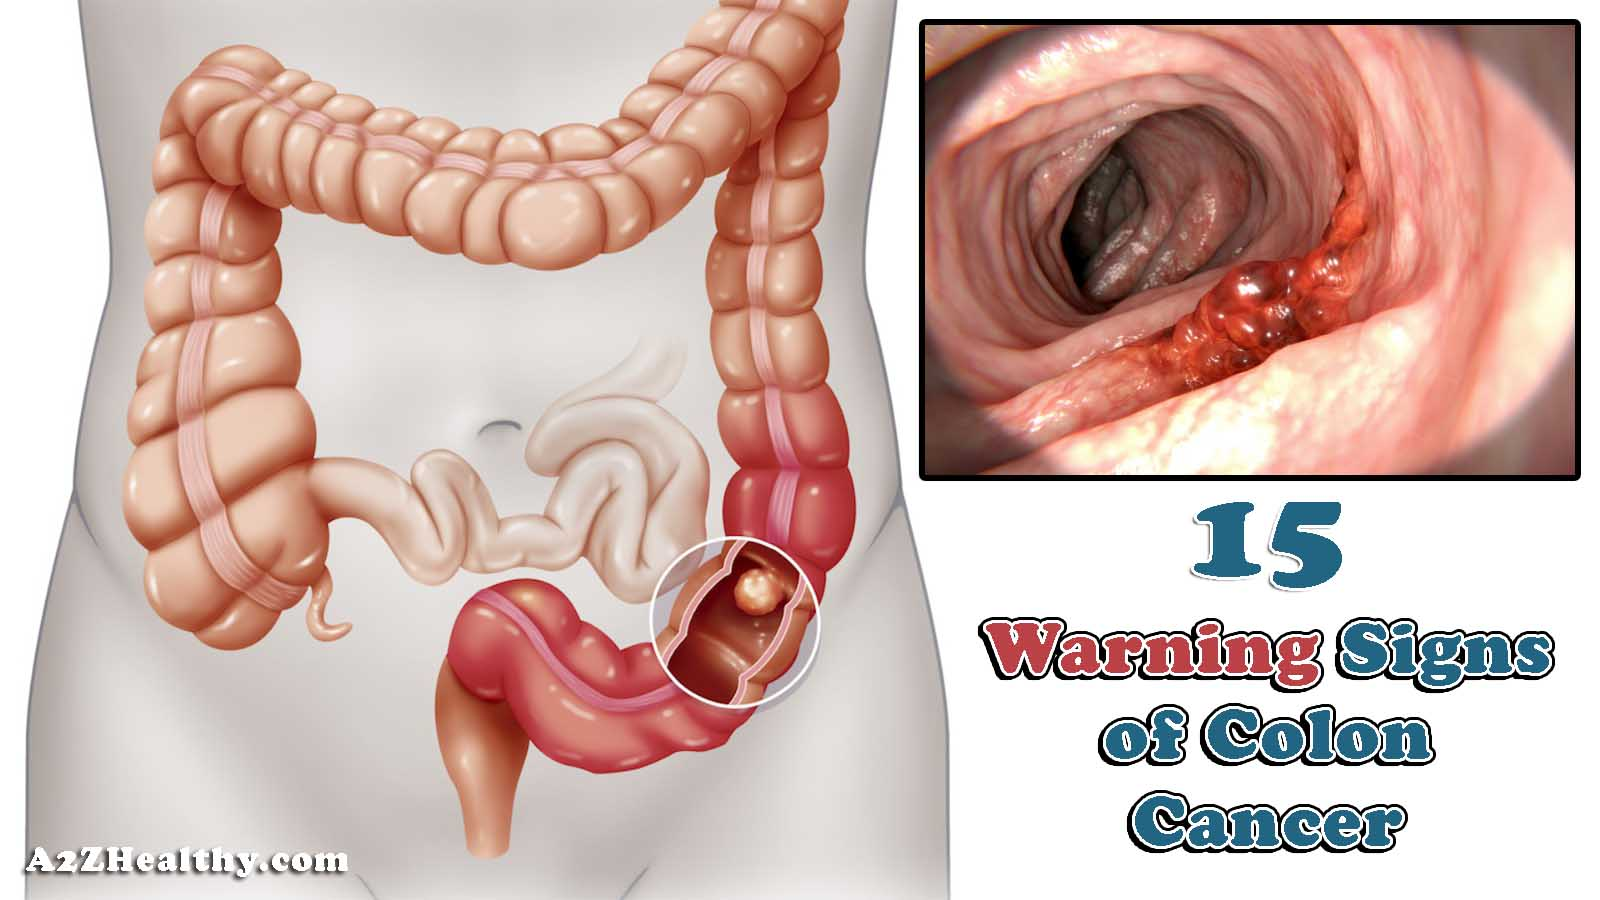 15 Signs & Symptoms of Colon Cancer